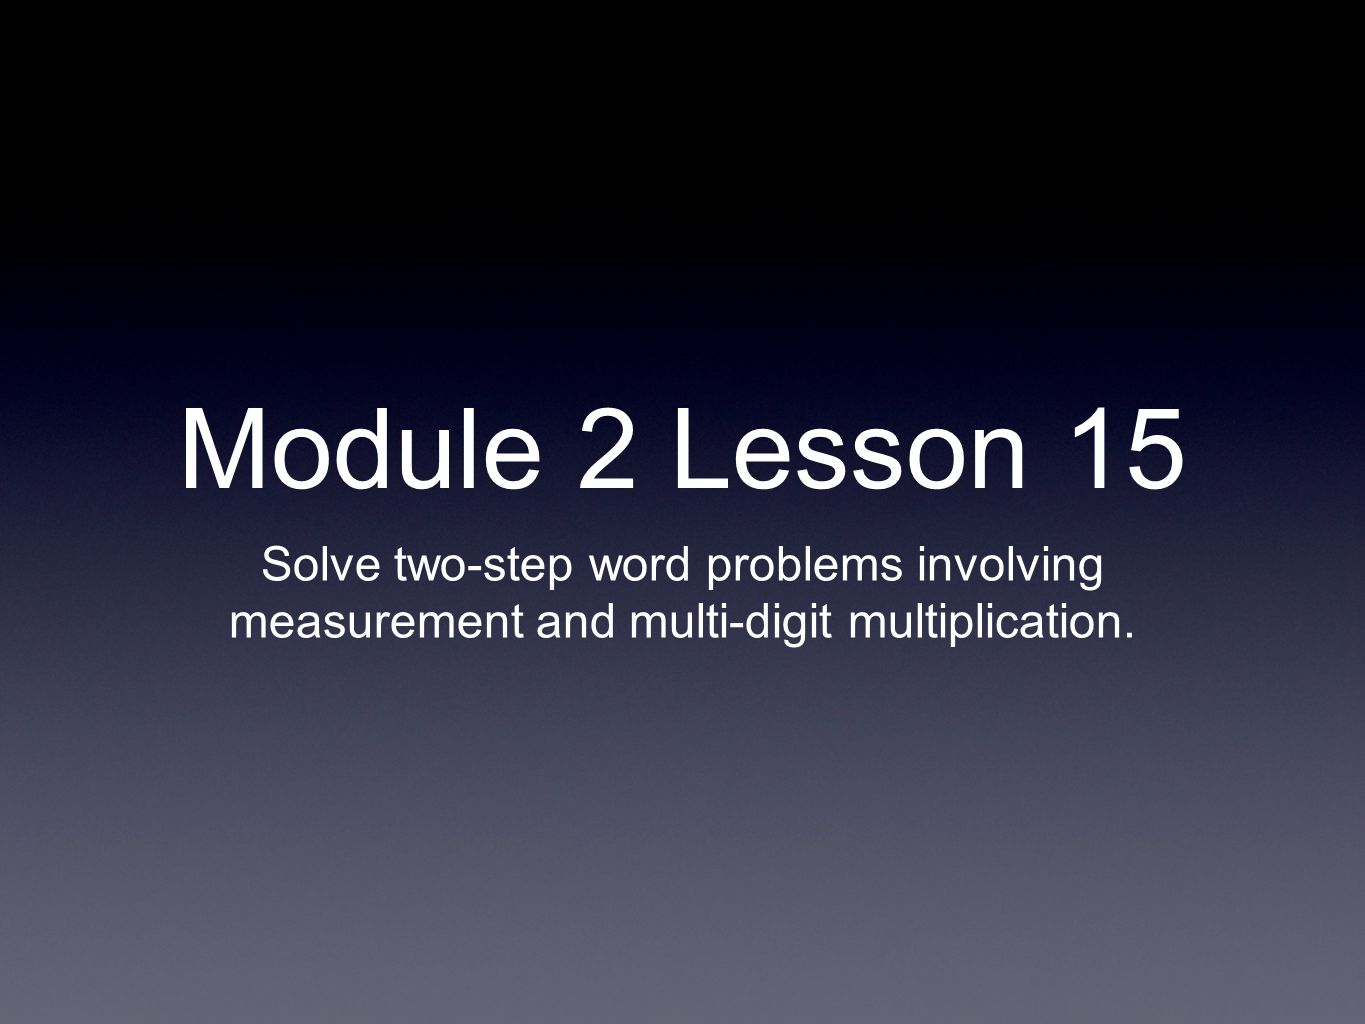 Module 2 Lesson 15 Solve Two Step Word Problems Involving